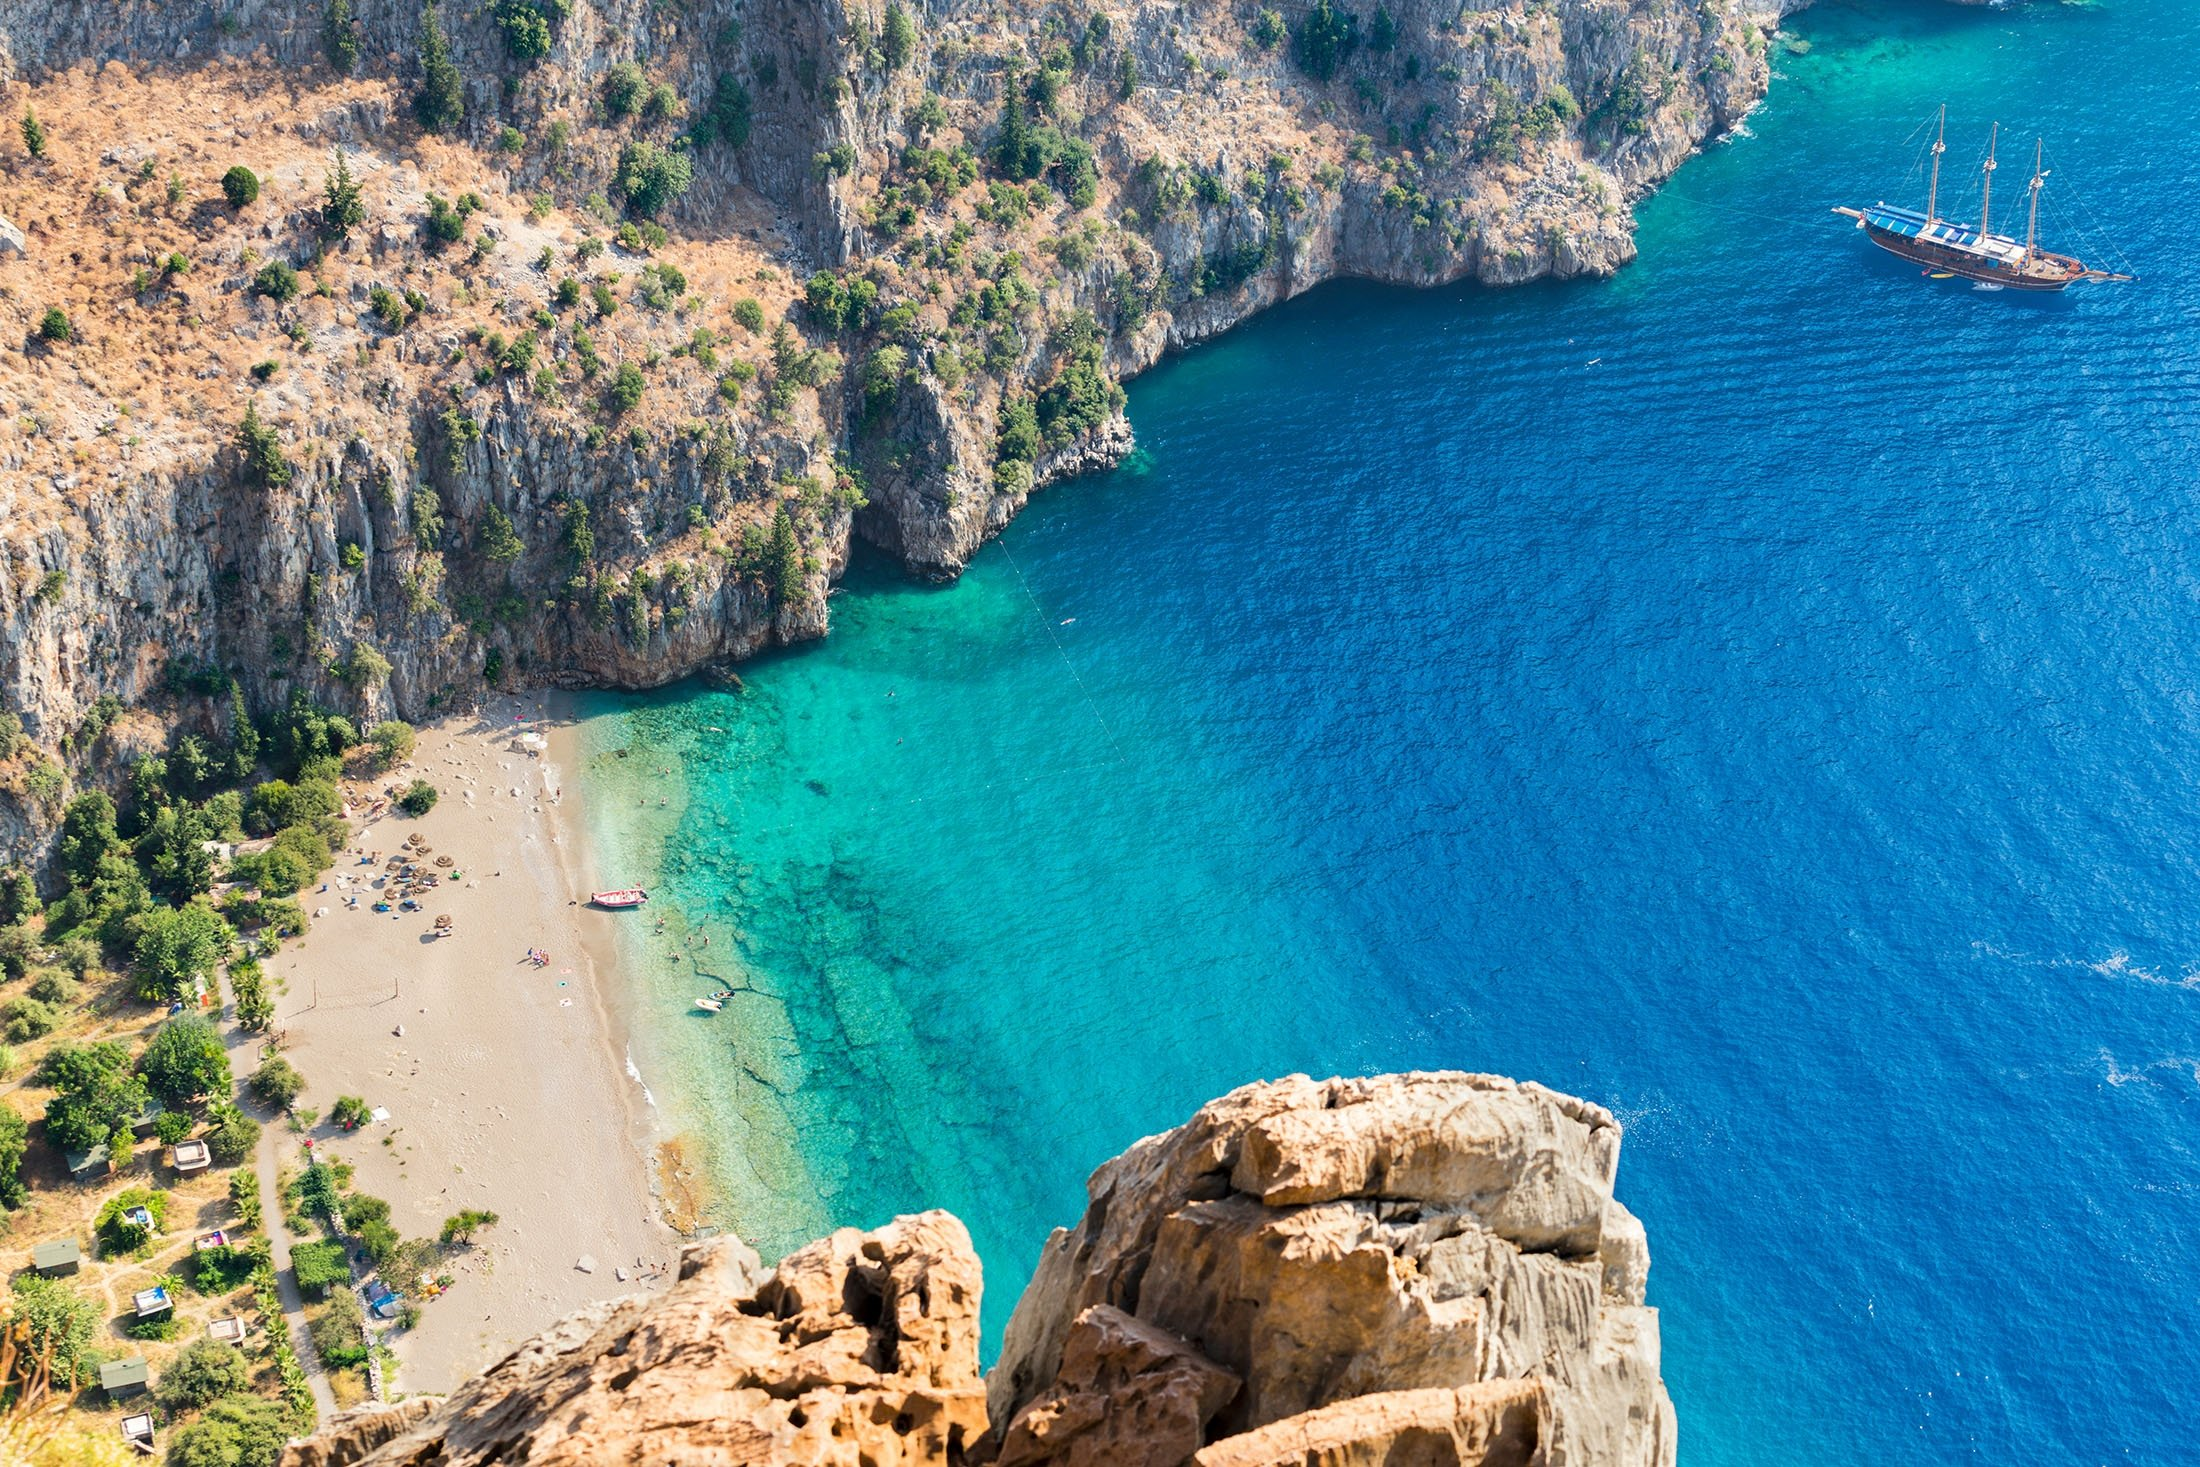 Top view of clear beach and transparent sea of Butterfly Valley. (Shutterstock Photo)